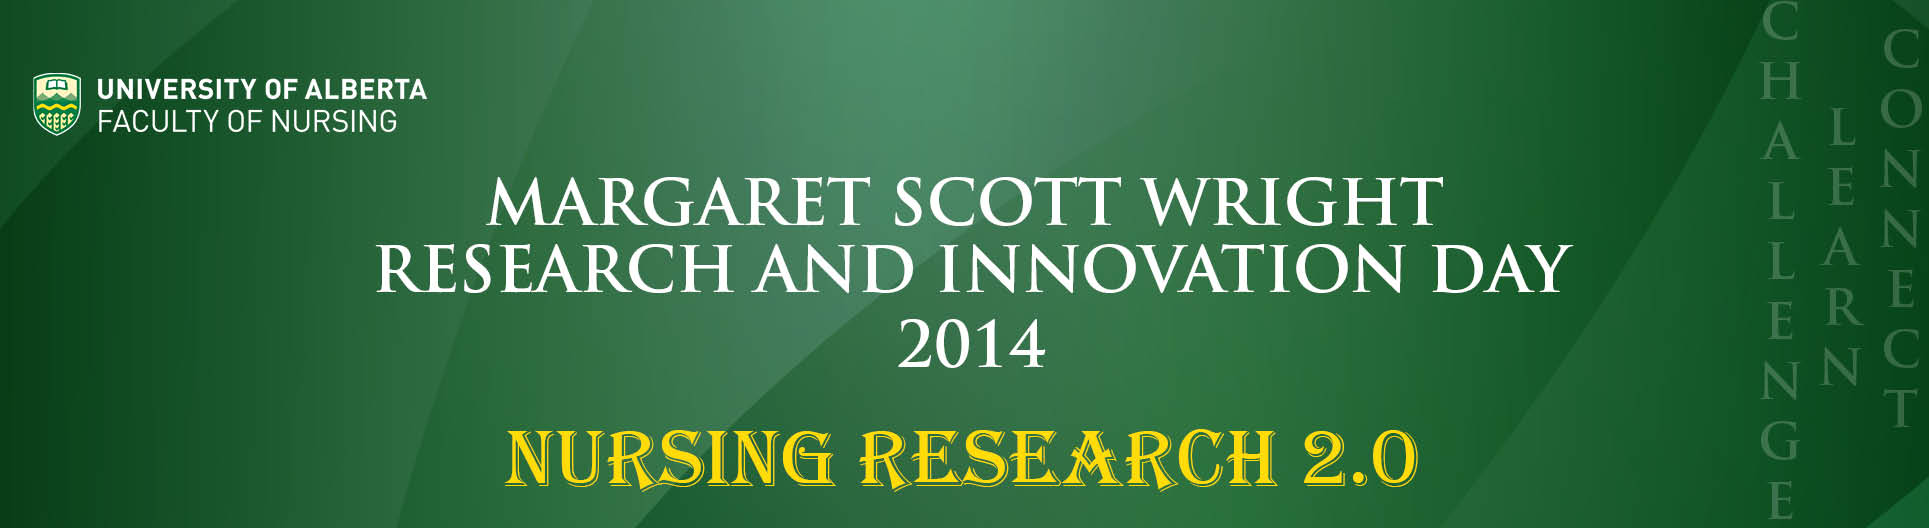 28th Annual Margaret Scott Wright: Research and Innovation Day 2014